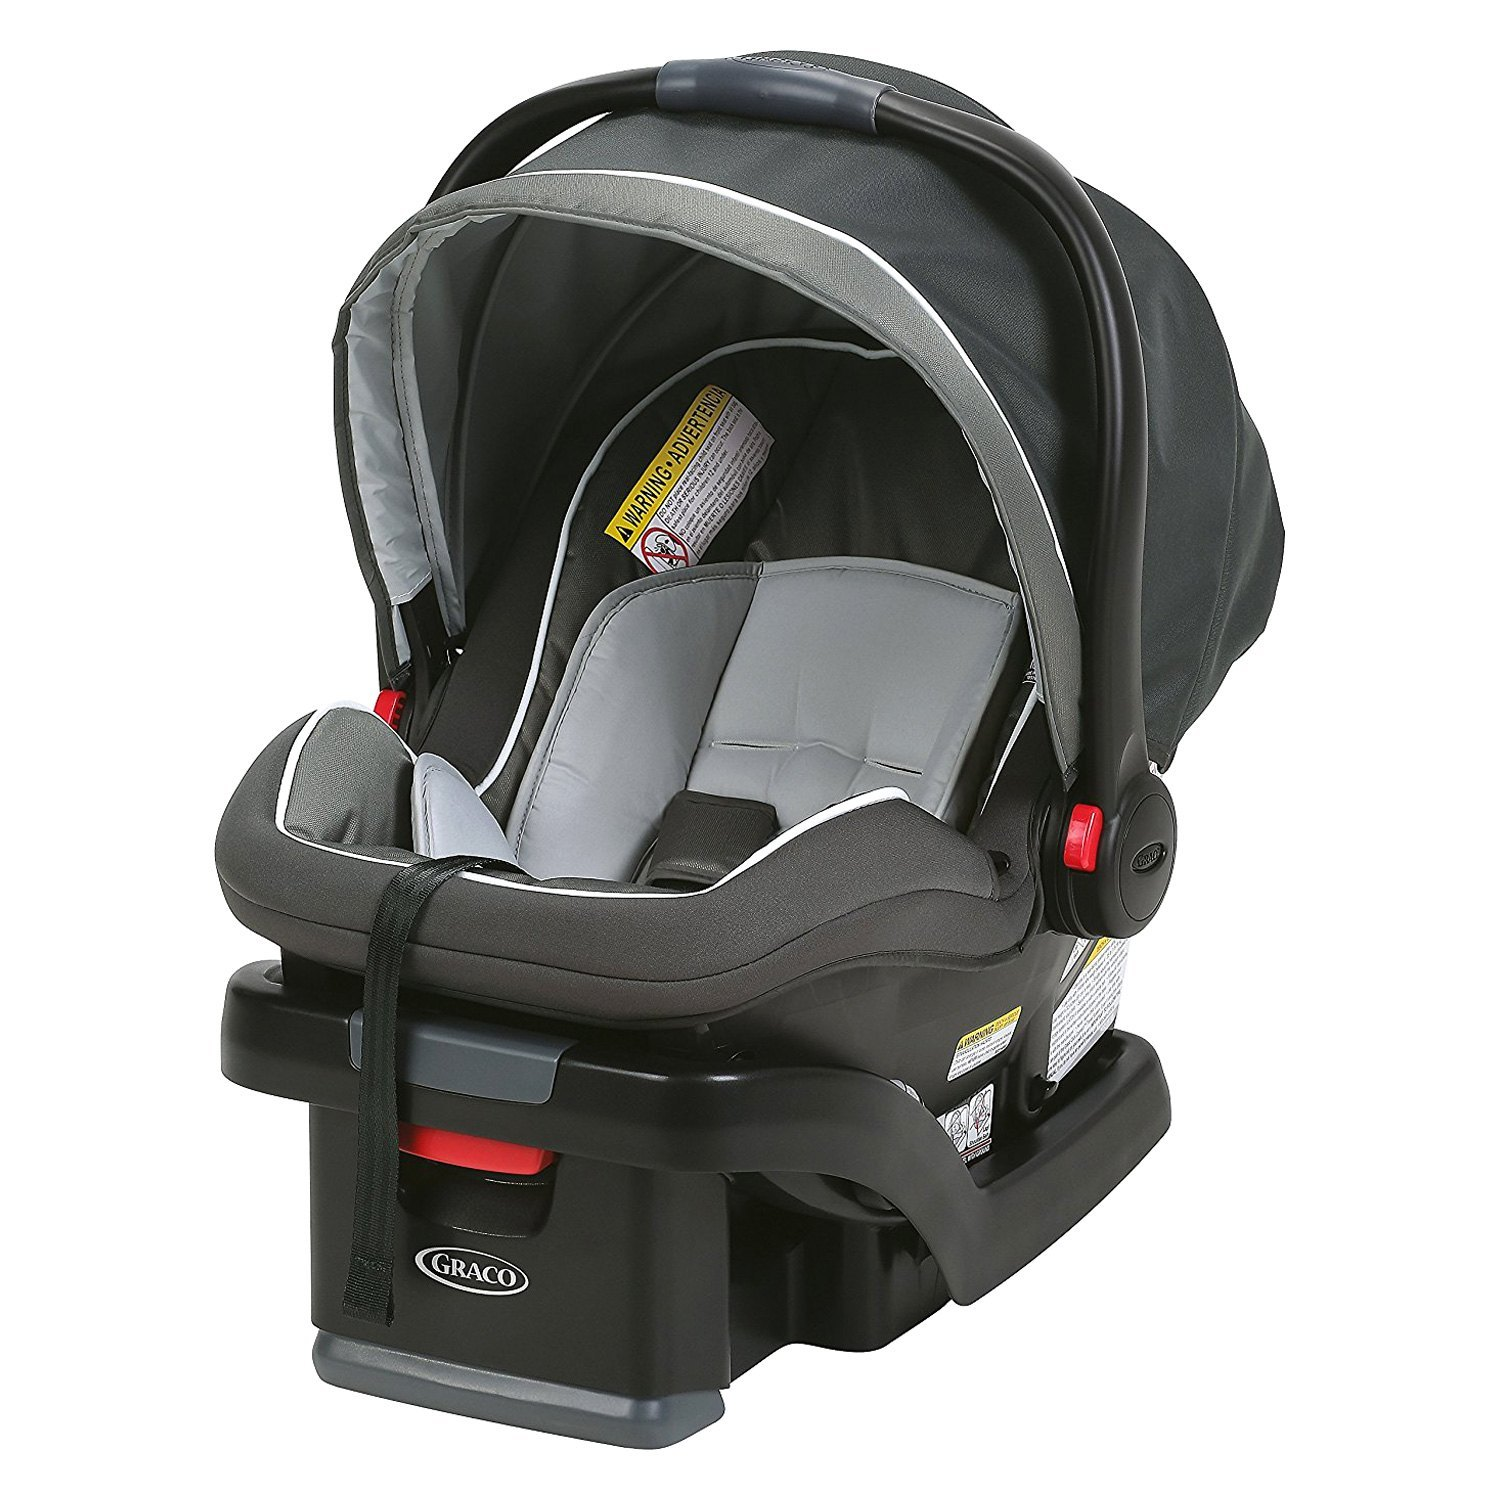 graco car seats baby products baby items. Black Bedroom Furniture Sets. Home Design Ideas